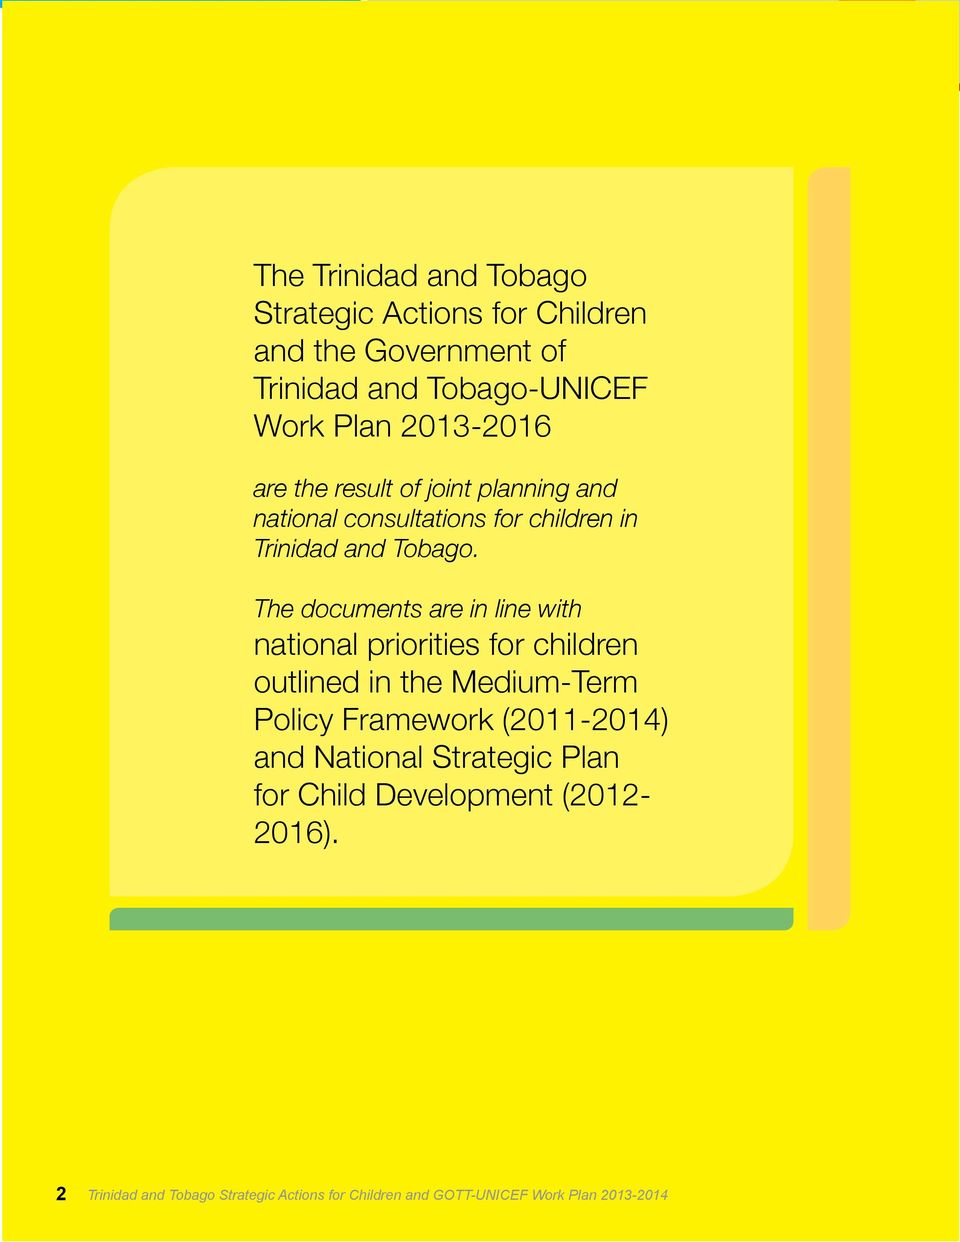 The documents are in line with national priorities for children outlined in the Medium-Term Policy Framework (2011-2014)